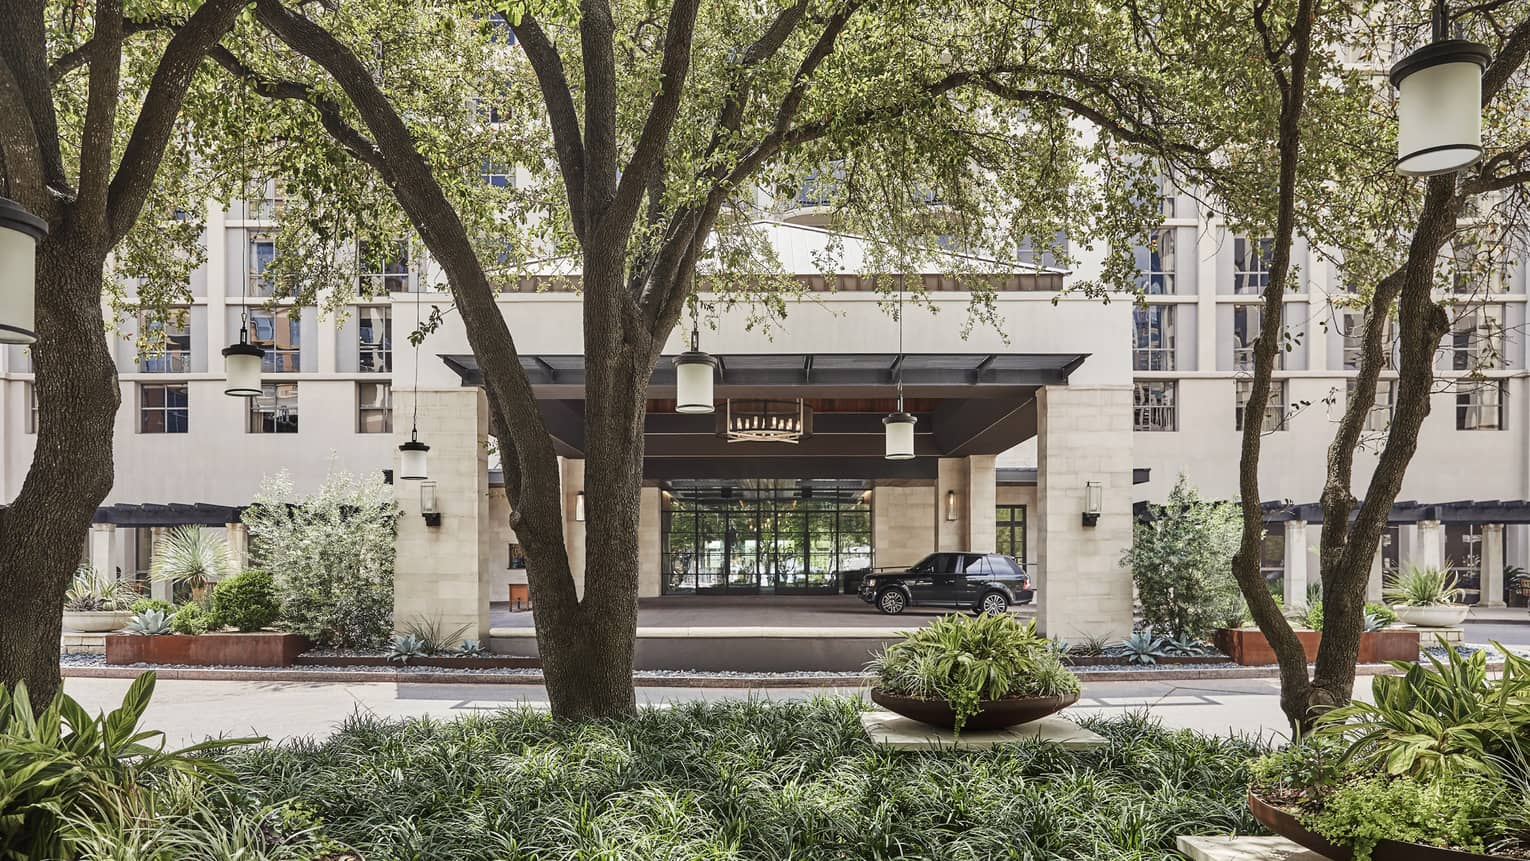 Trees line the entrance to the Four Seasons Hotel in Austin